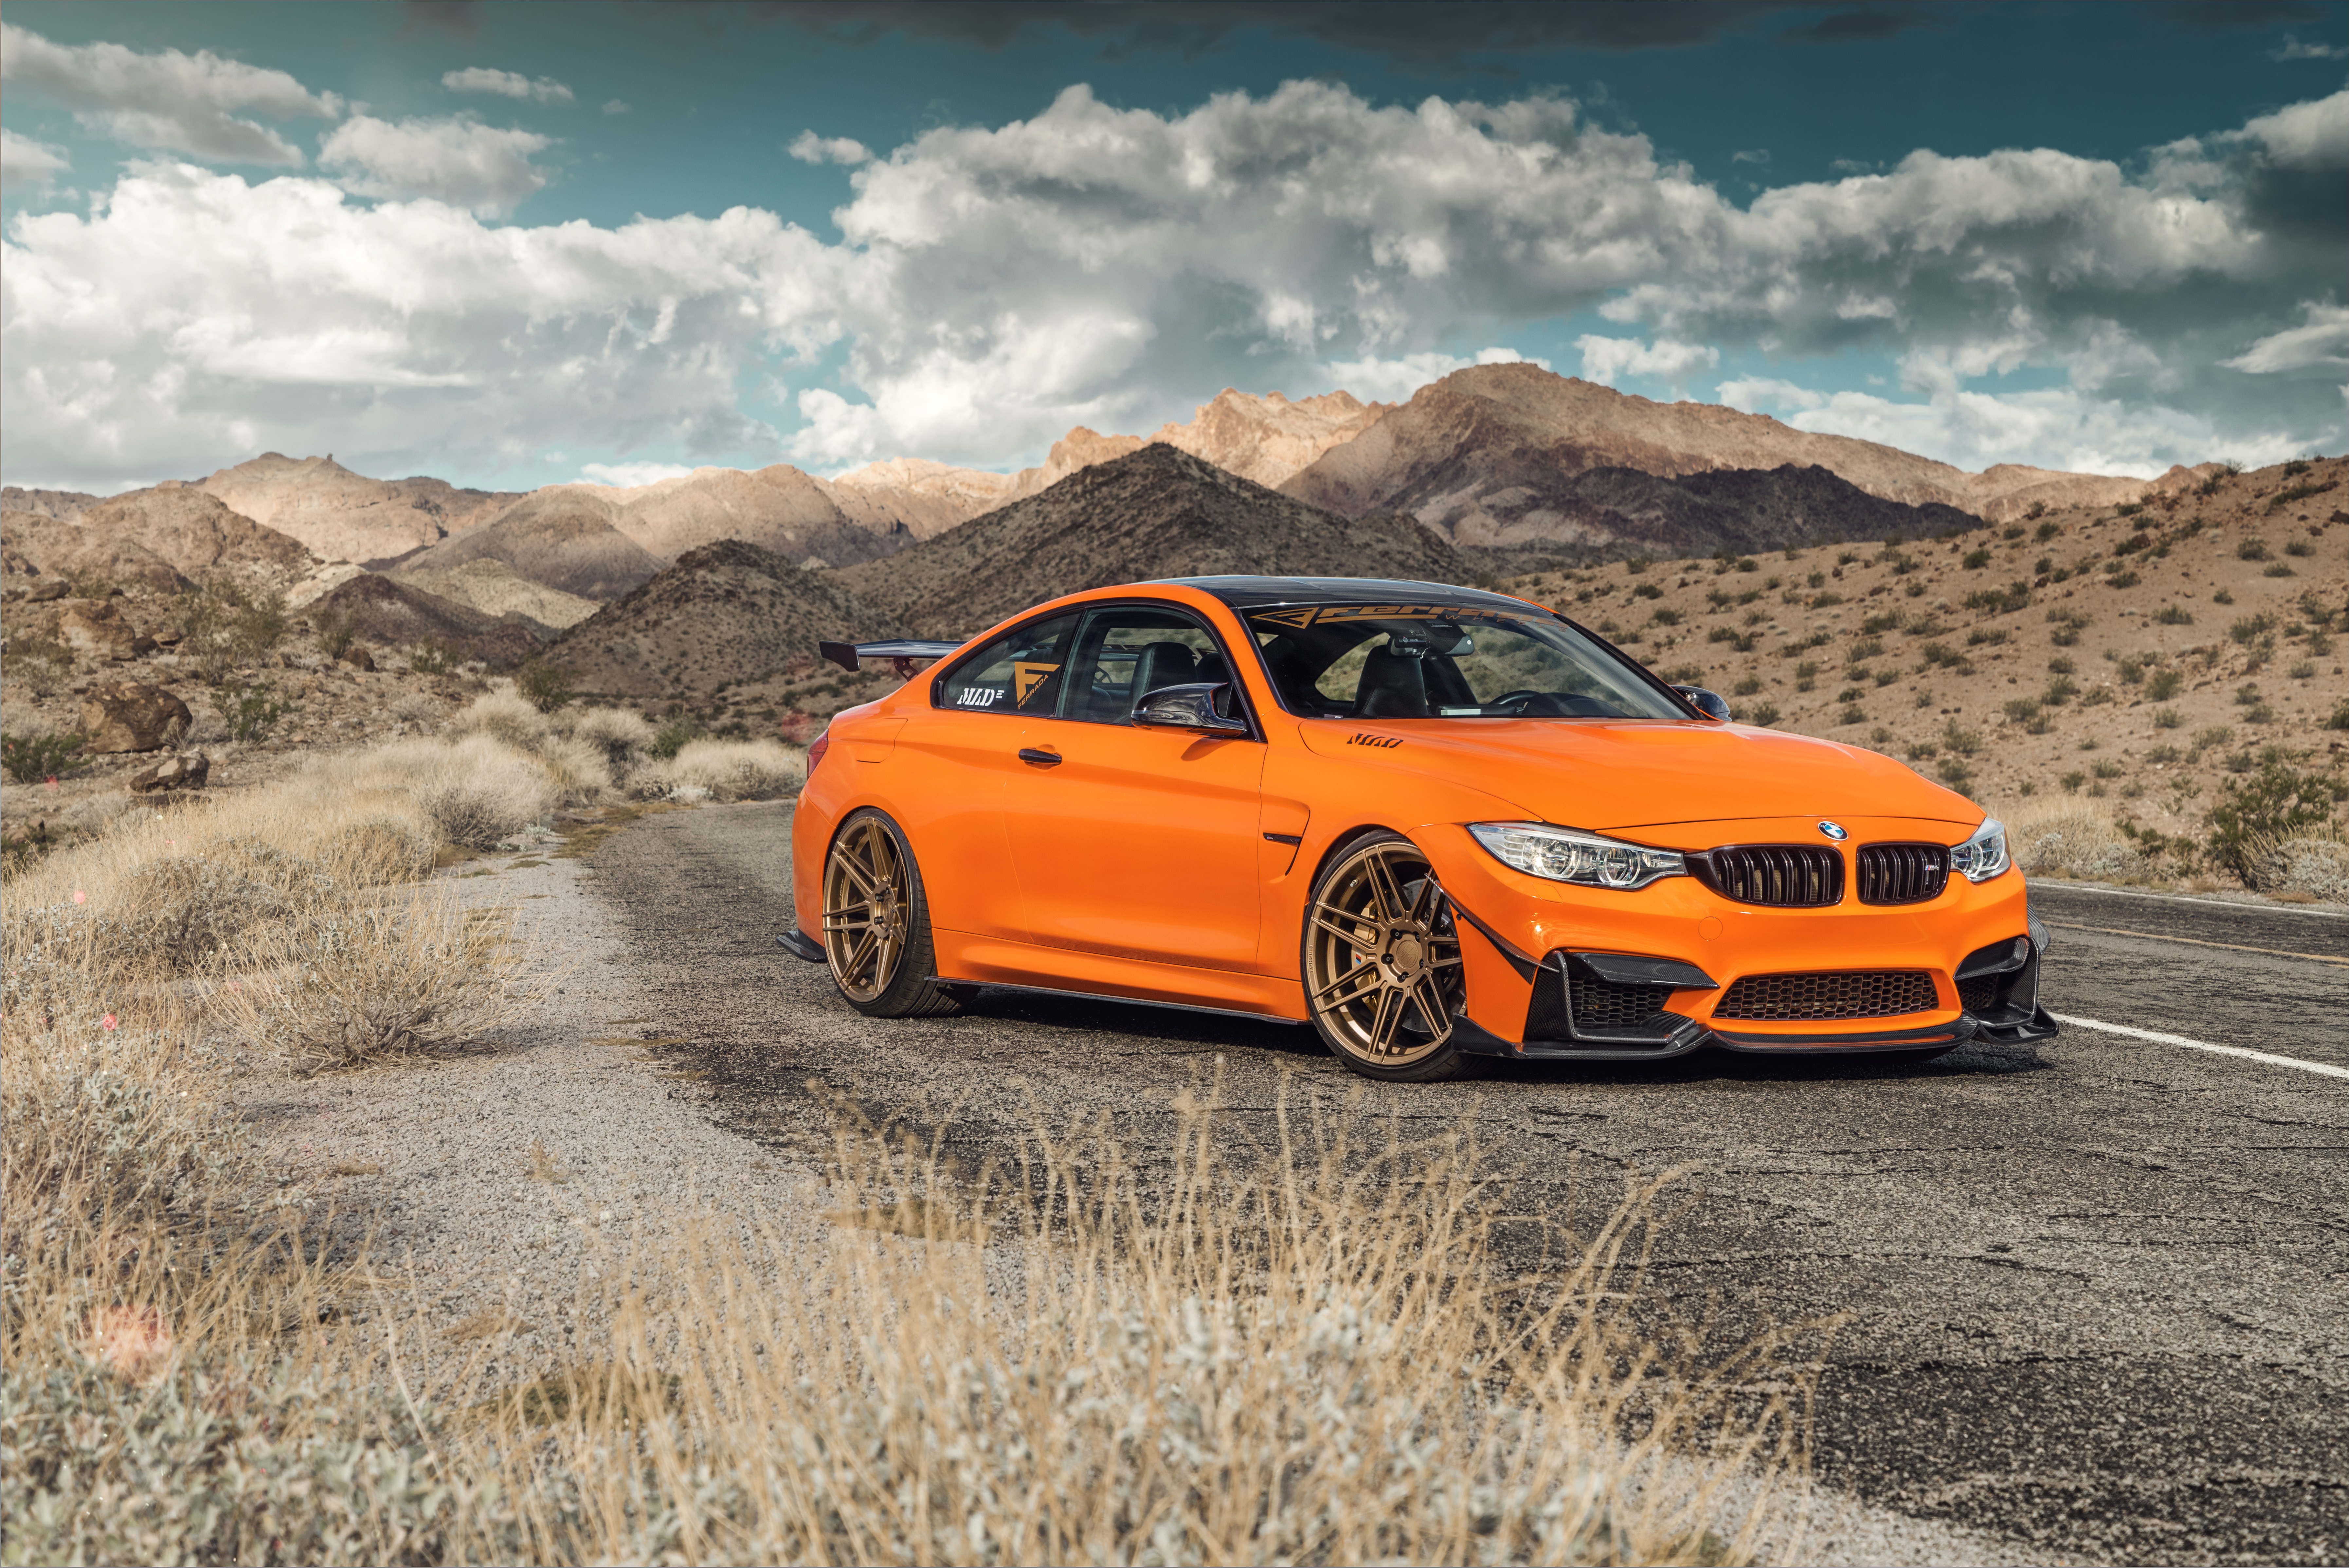 1920x1080 bmw m4 8k 2019 laptop full hd 1080p hd 4k wallpapers  images  backgrounds  photos and